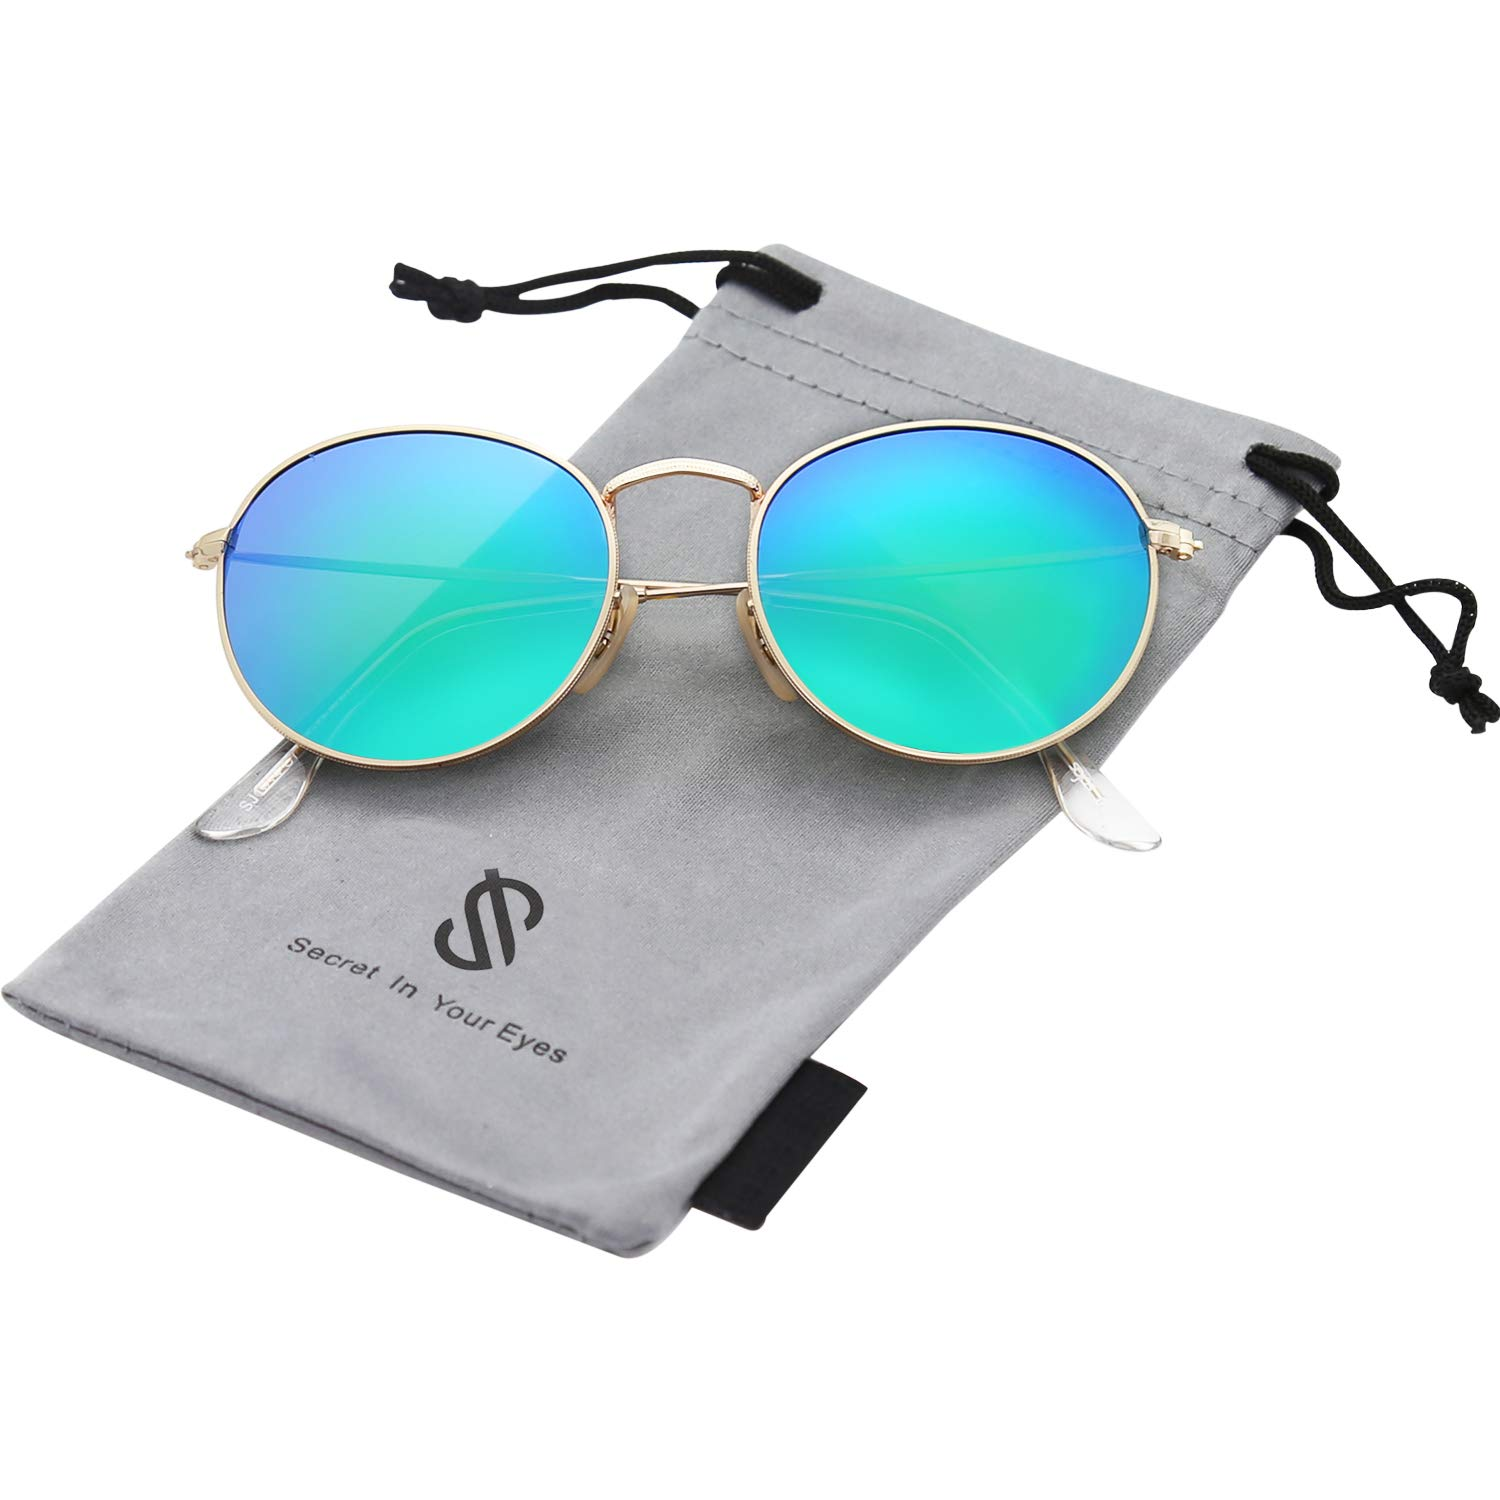 SOJOS Small Round Polarized Sunglasses Mirrored Lens Unisex Glasses SJ1014 3447 with Gold Frame/Green Mirrored Polarized Lens by SOJOS